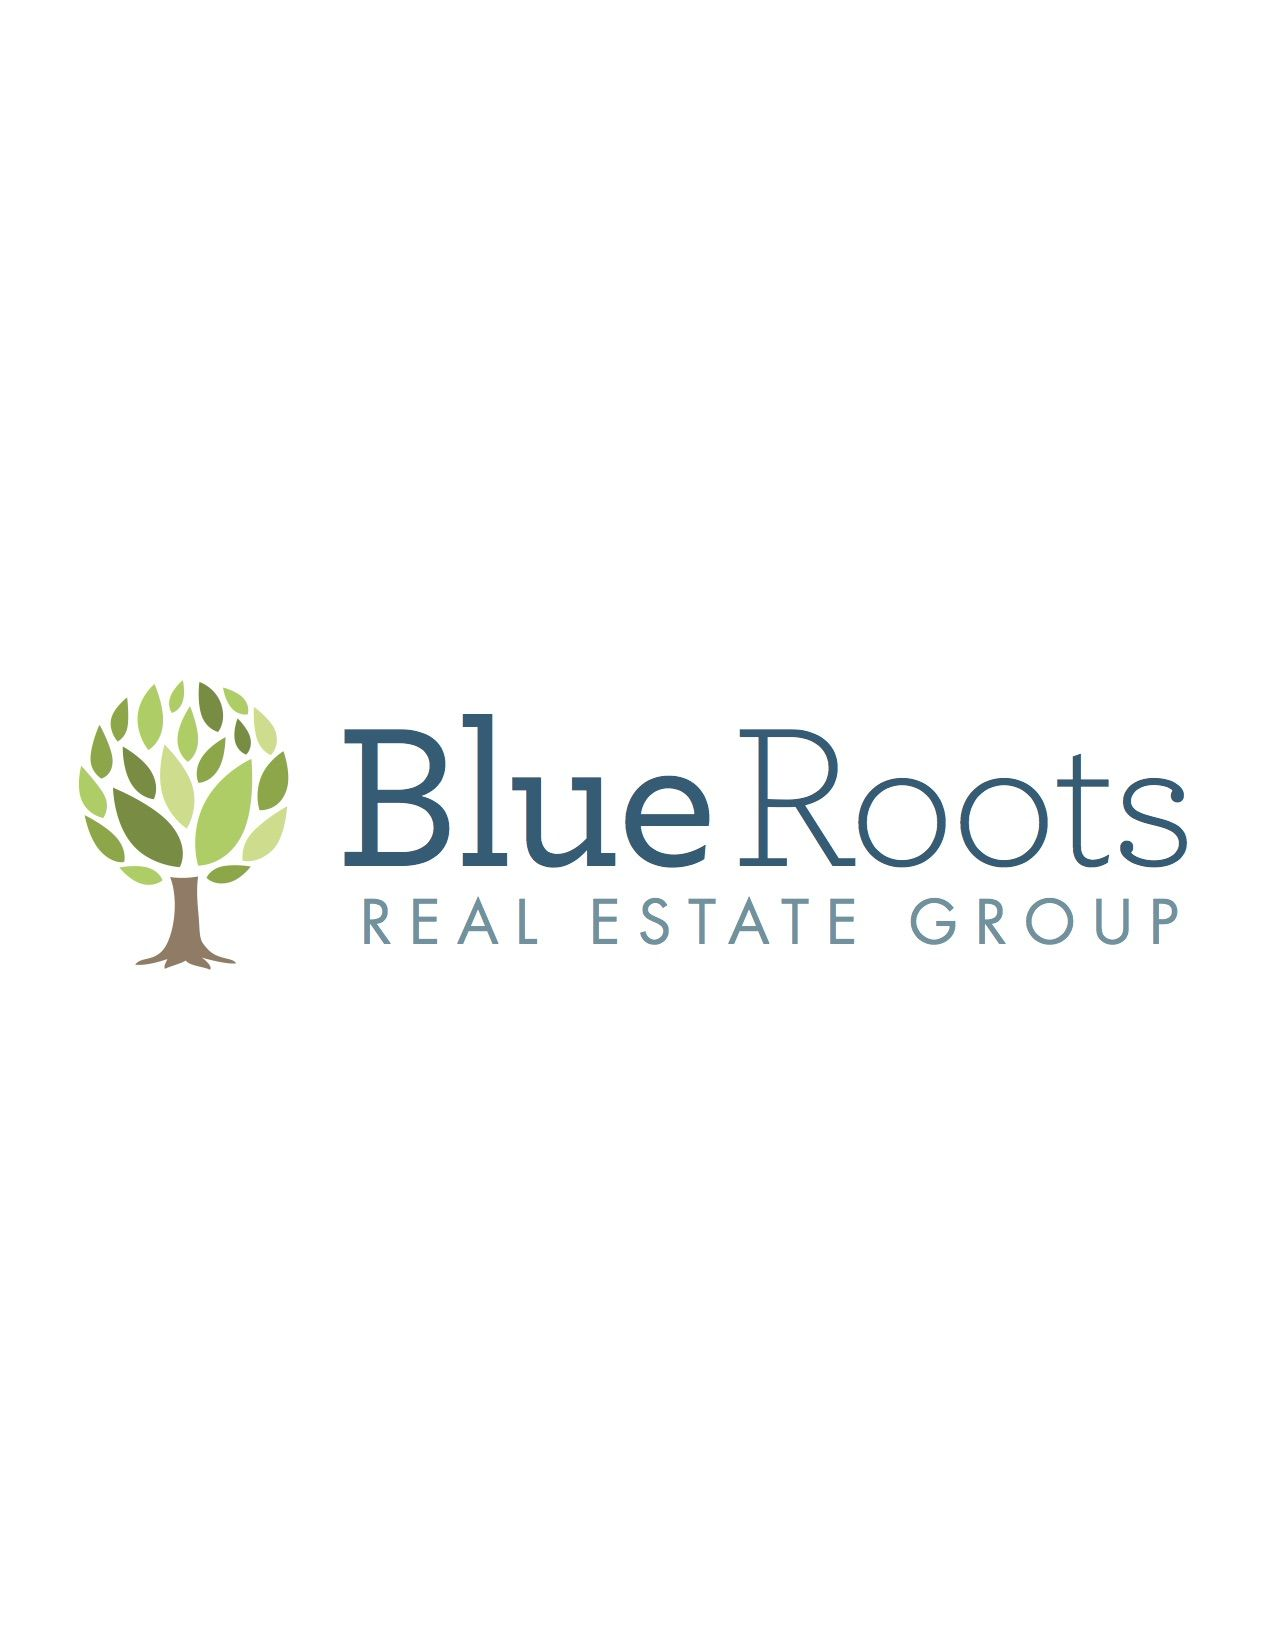 Blue Roots Real Estate Group